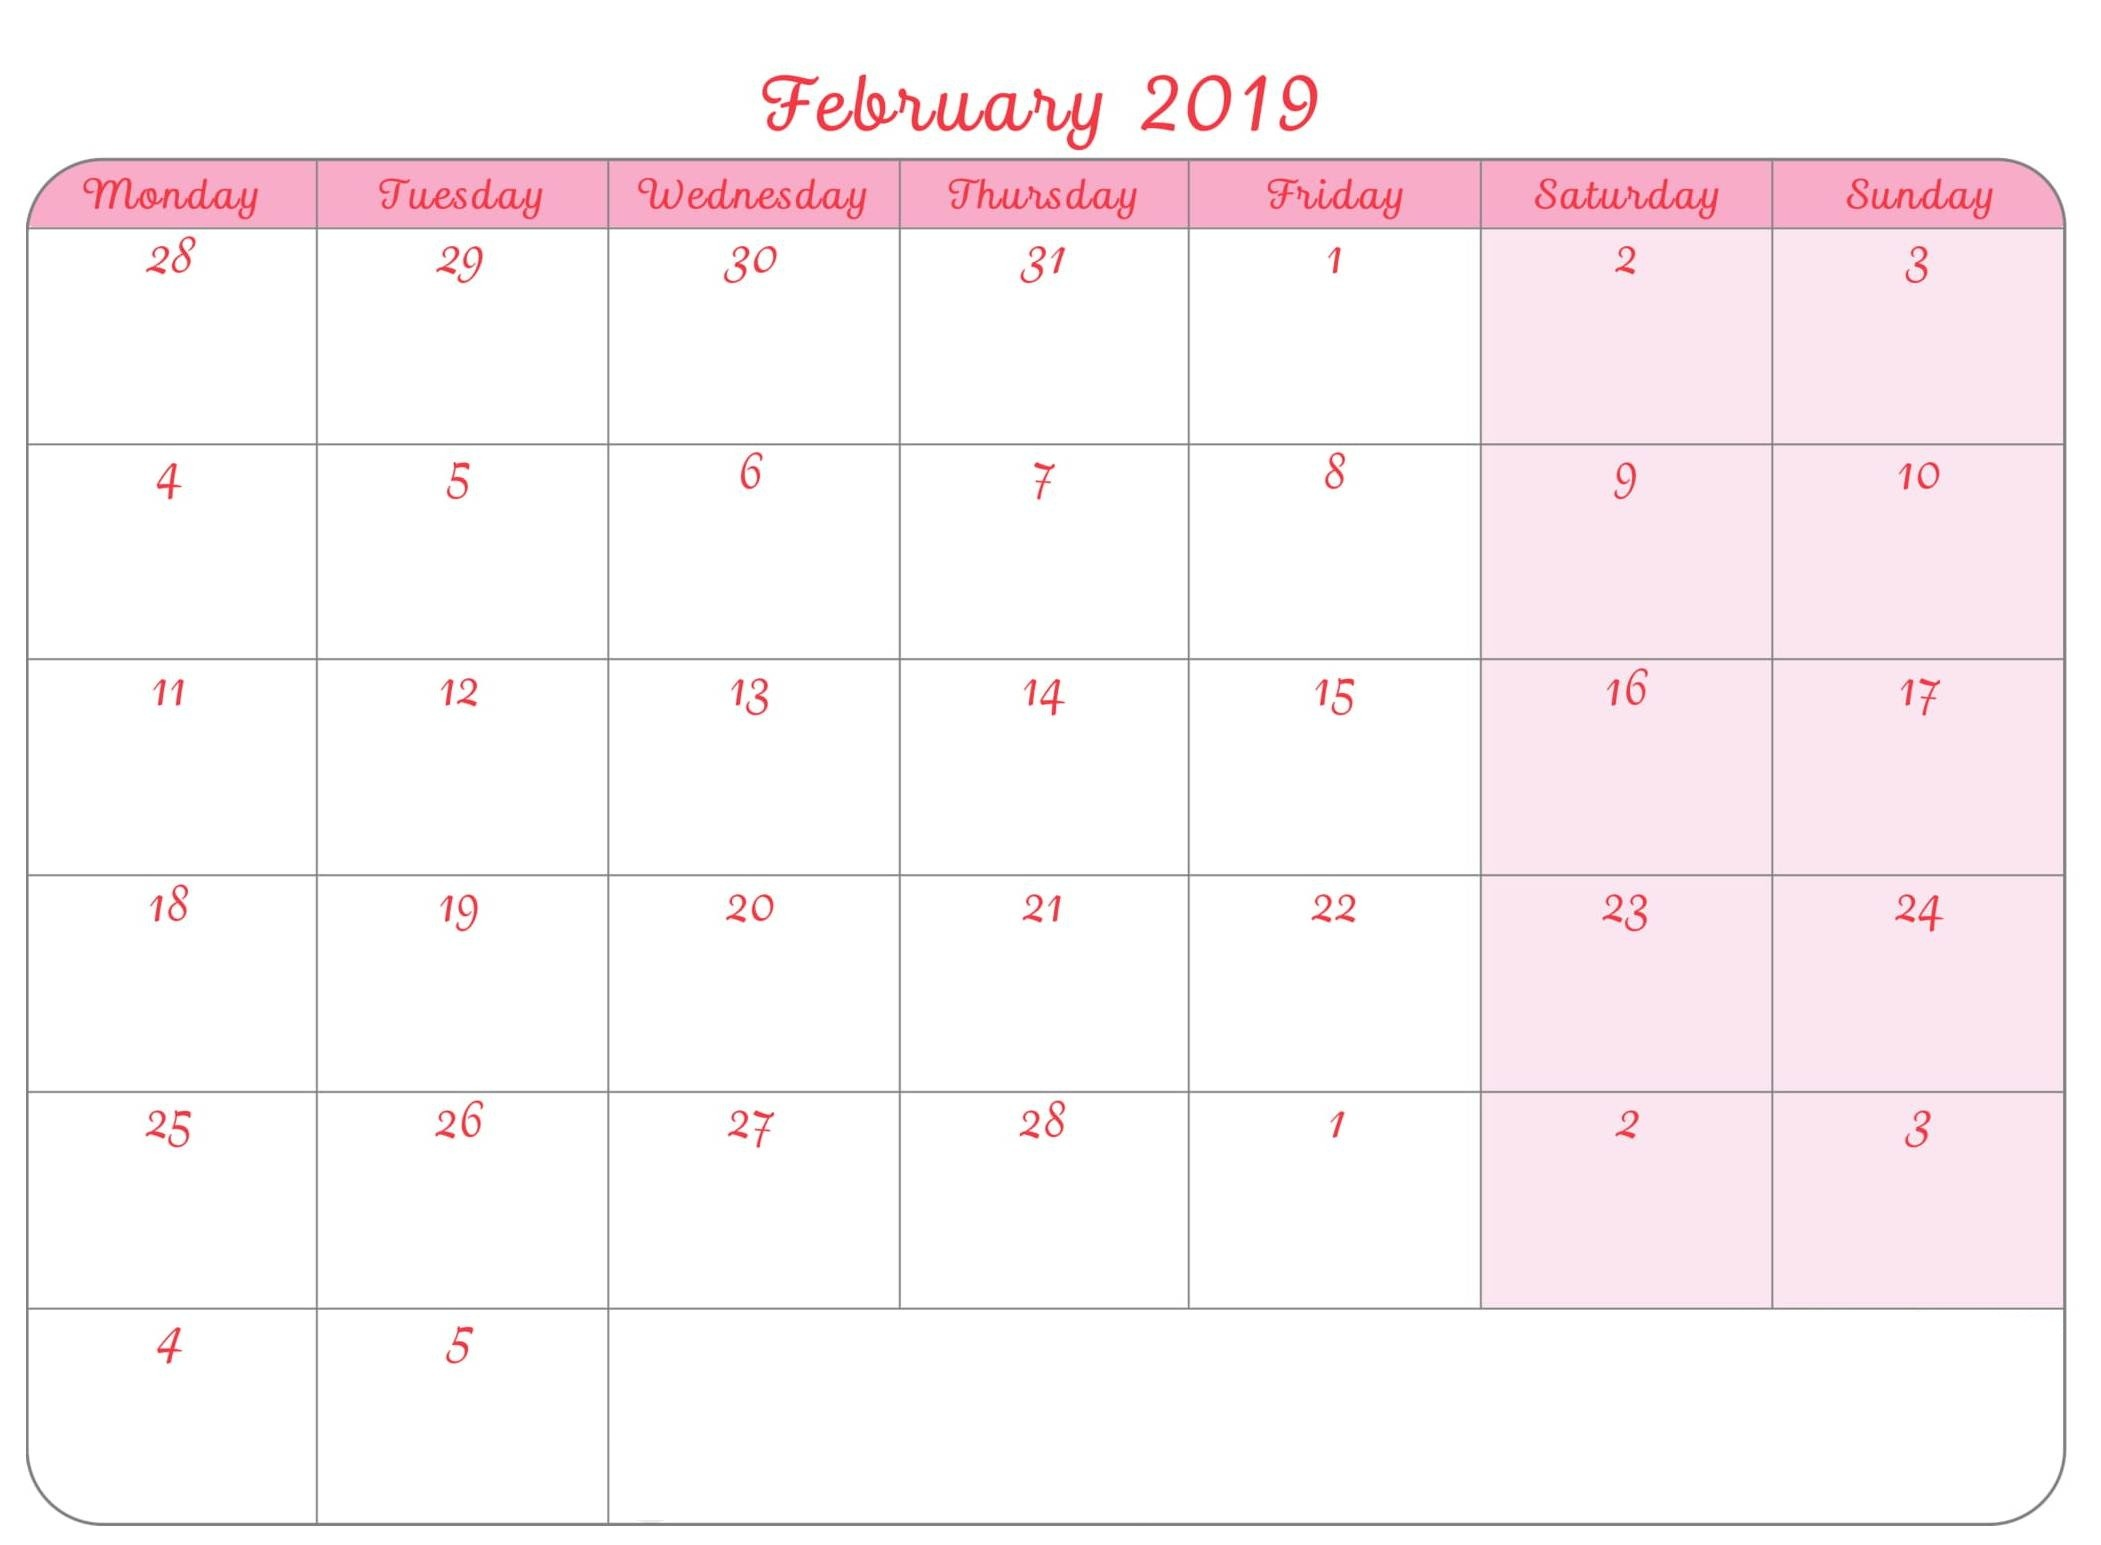 Fillable Monthly Calendar February 2019